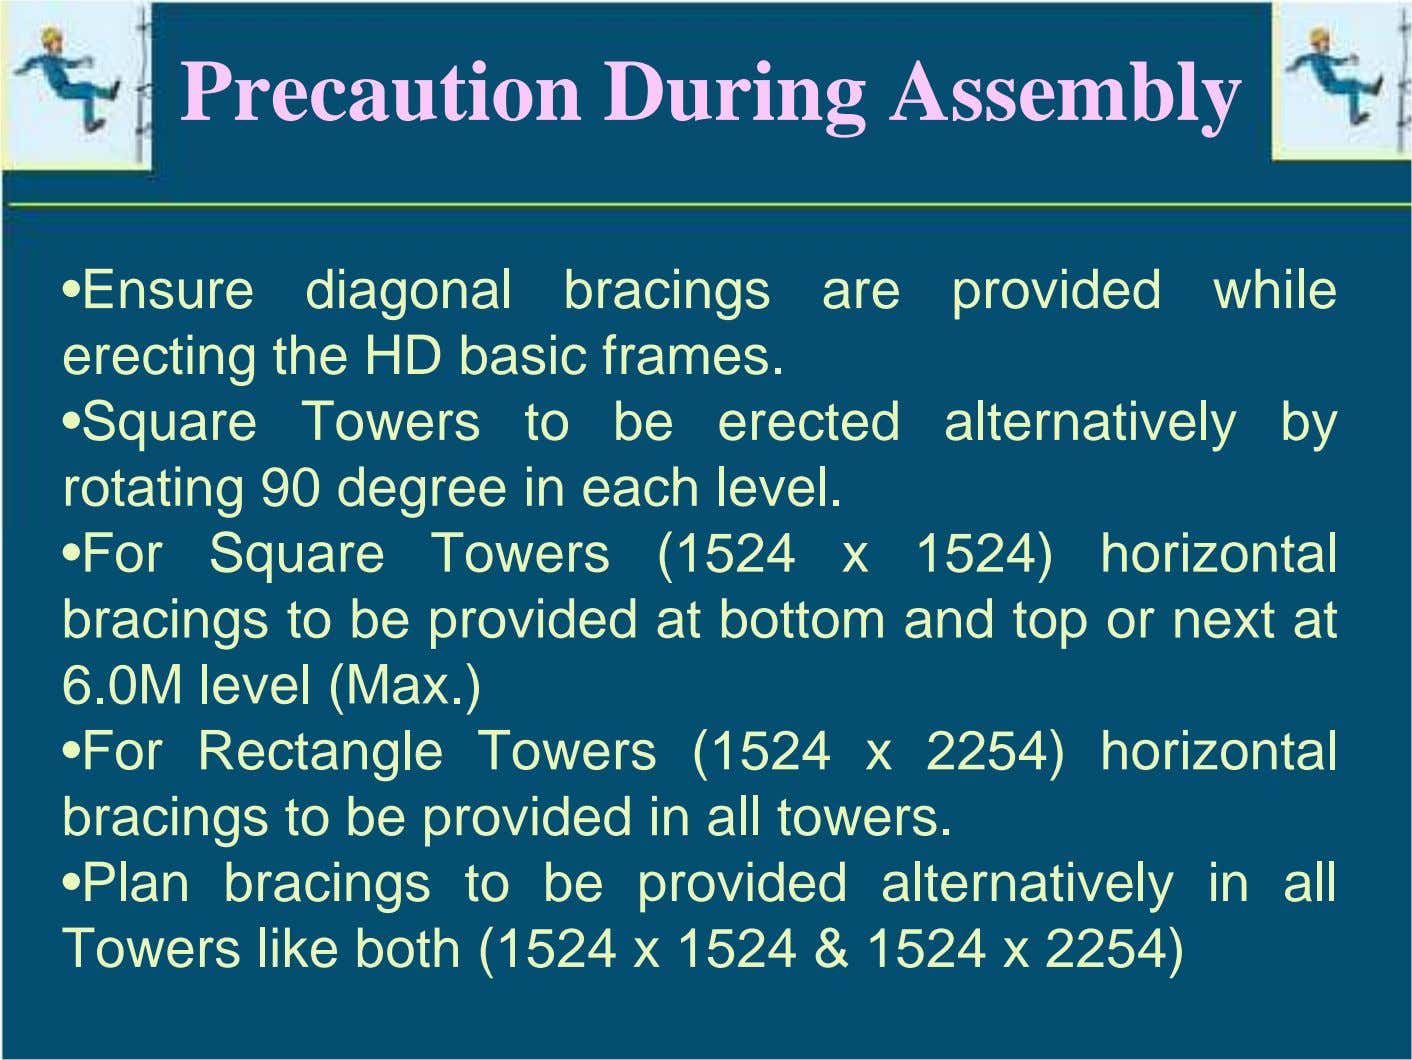 Precaution During Assembly •Ensure diagonal bracings are provided while erecting the HD basic frames. •Square